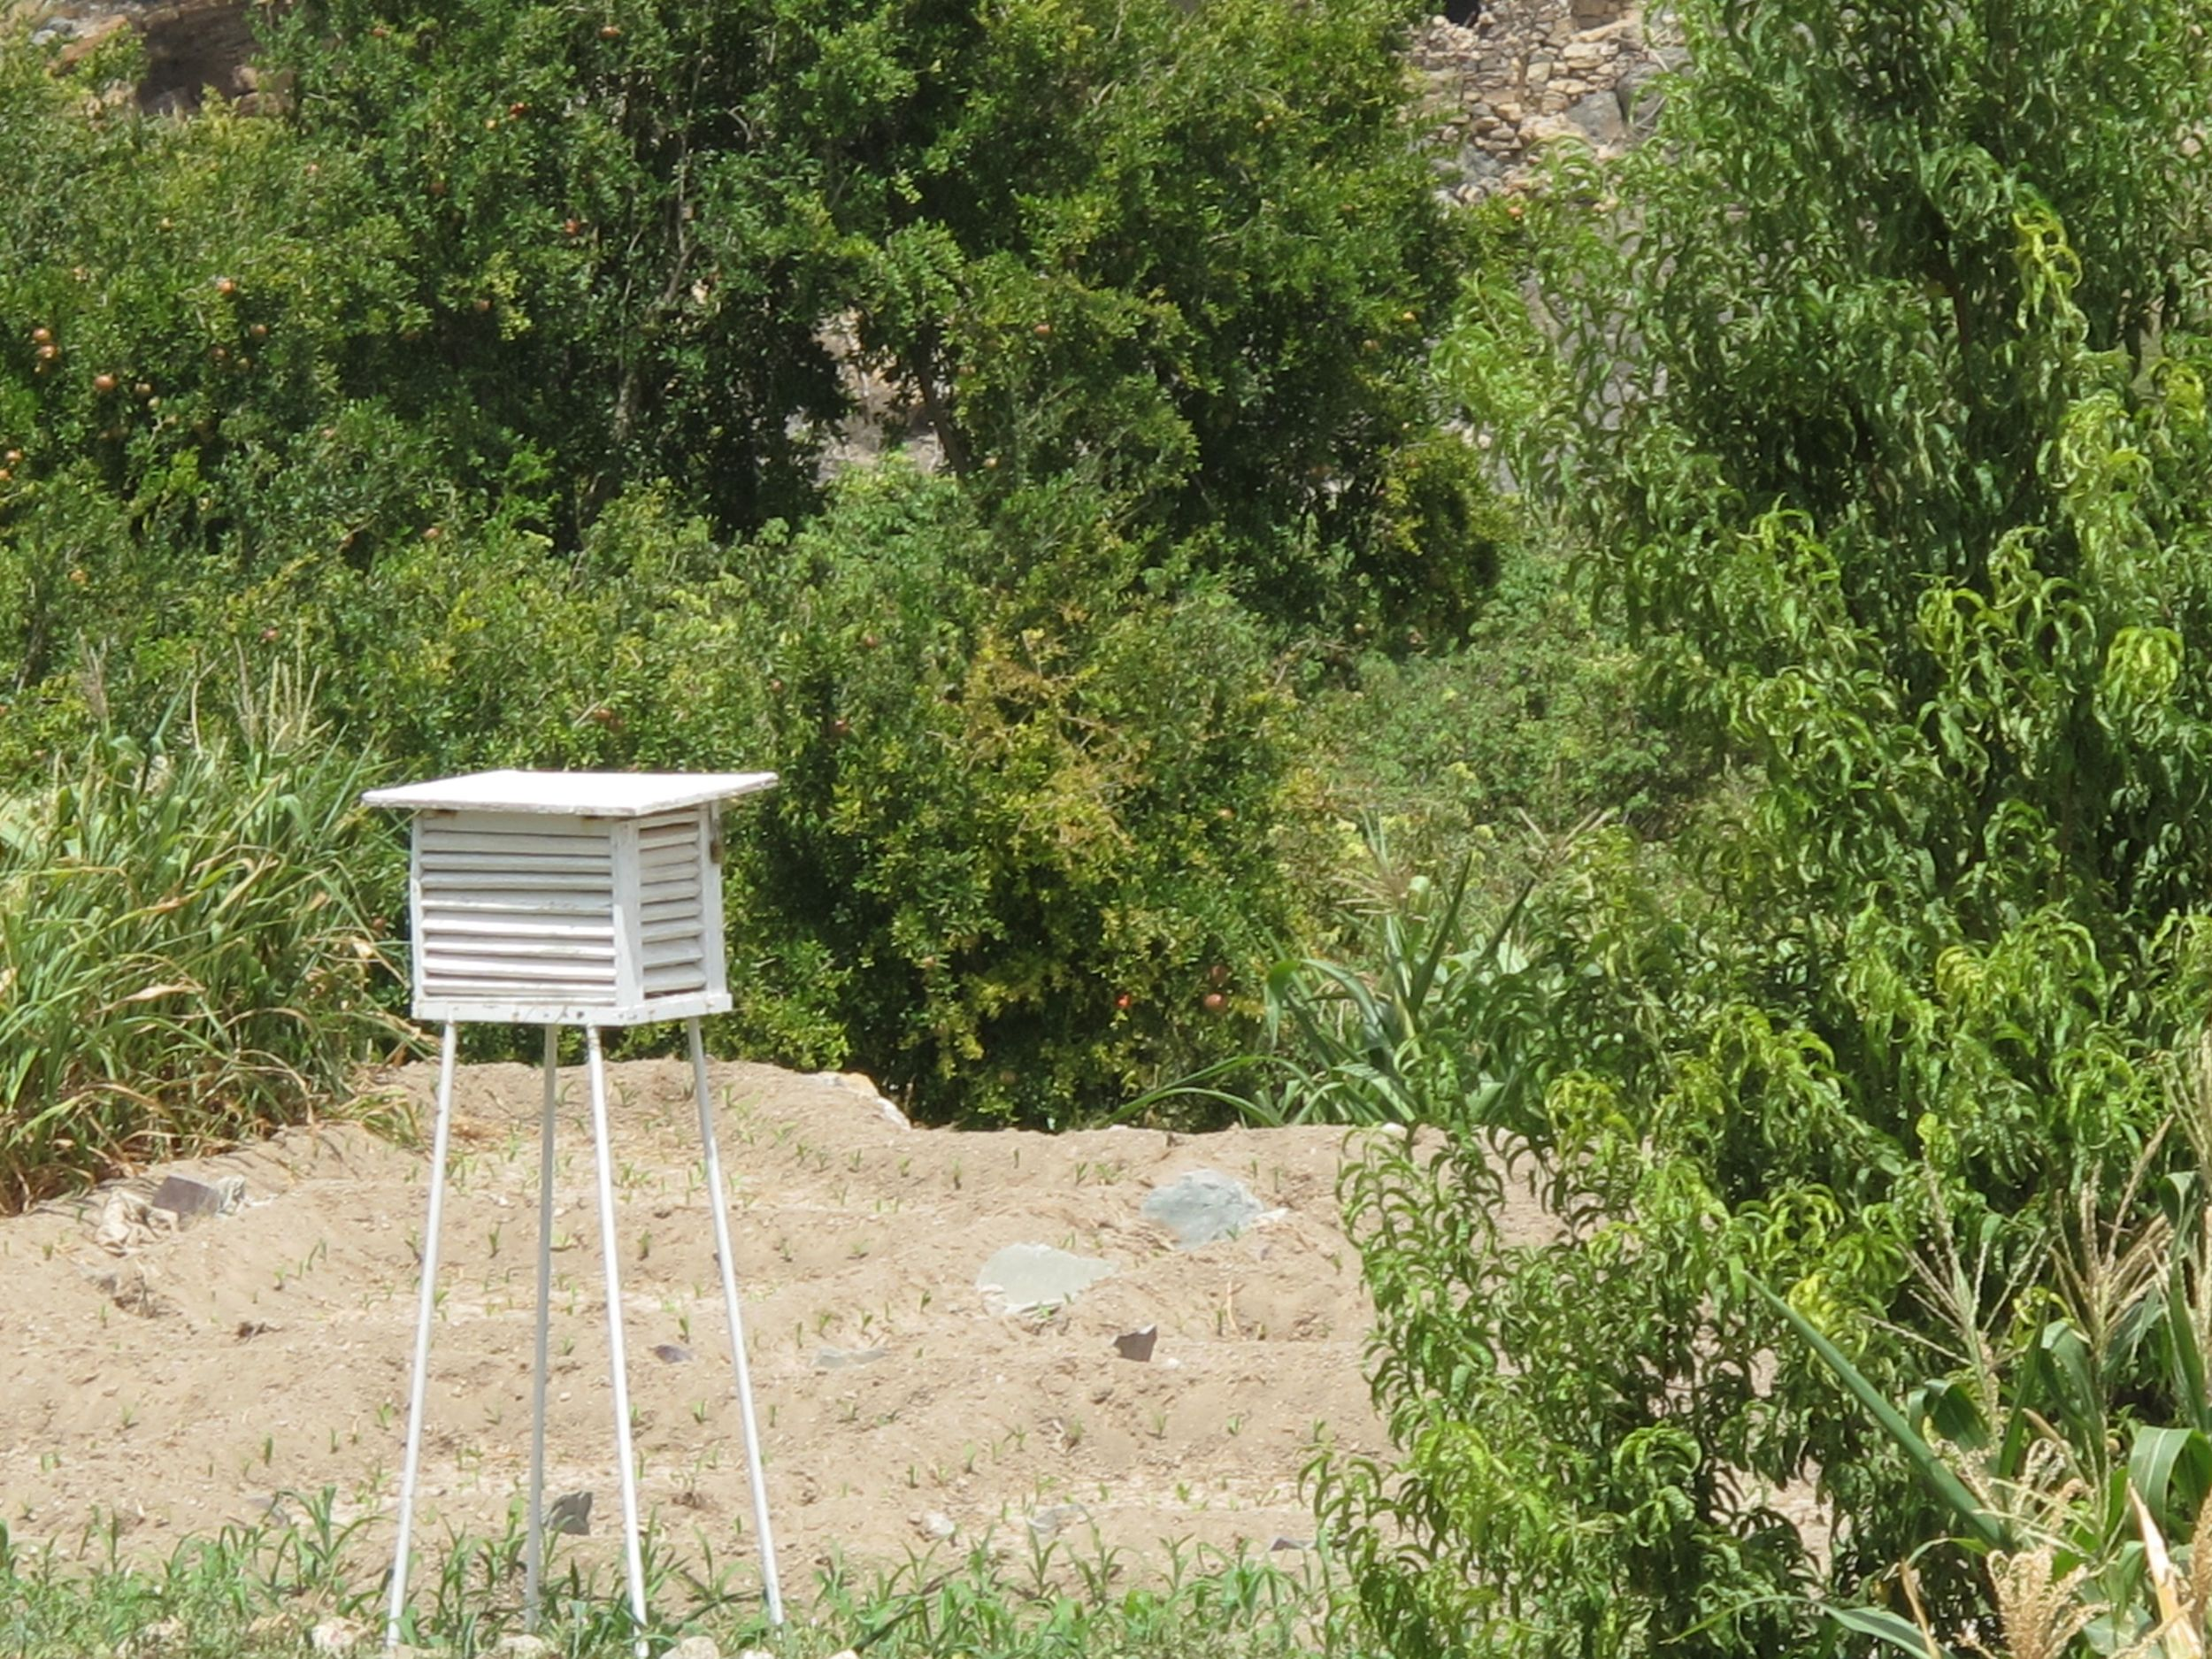 Keeping bees in the fields